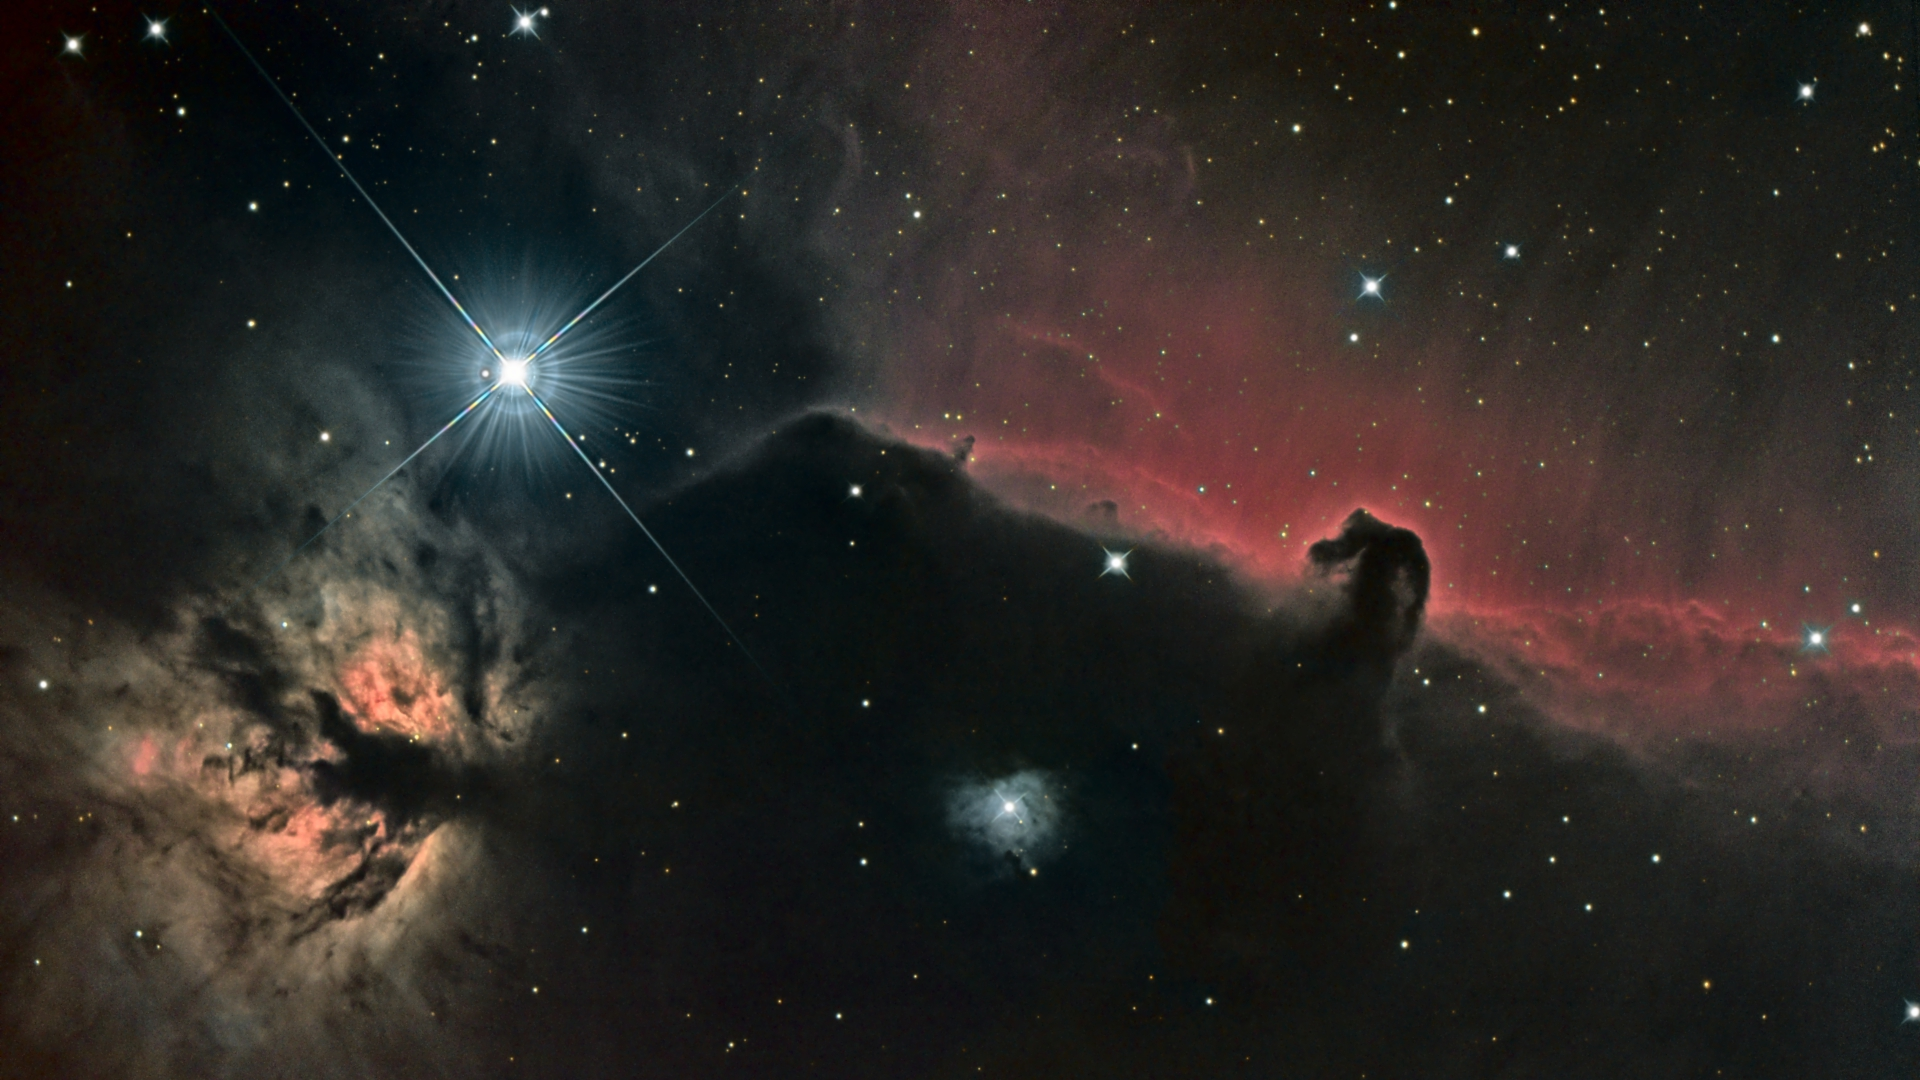 Horsehead and Flame Nebula